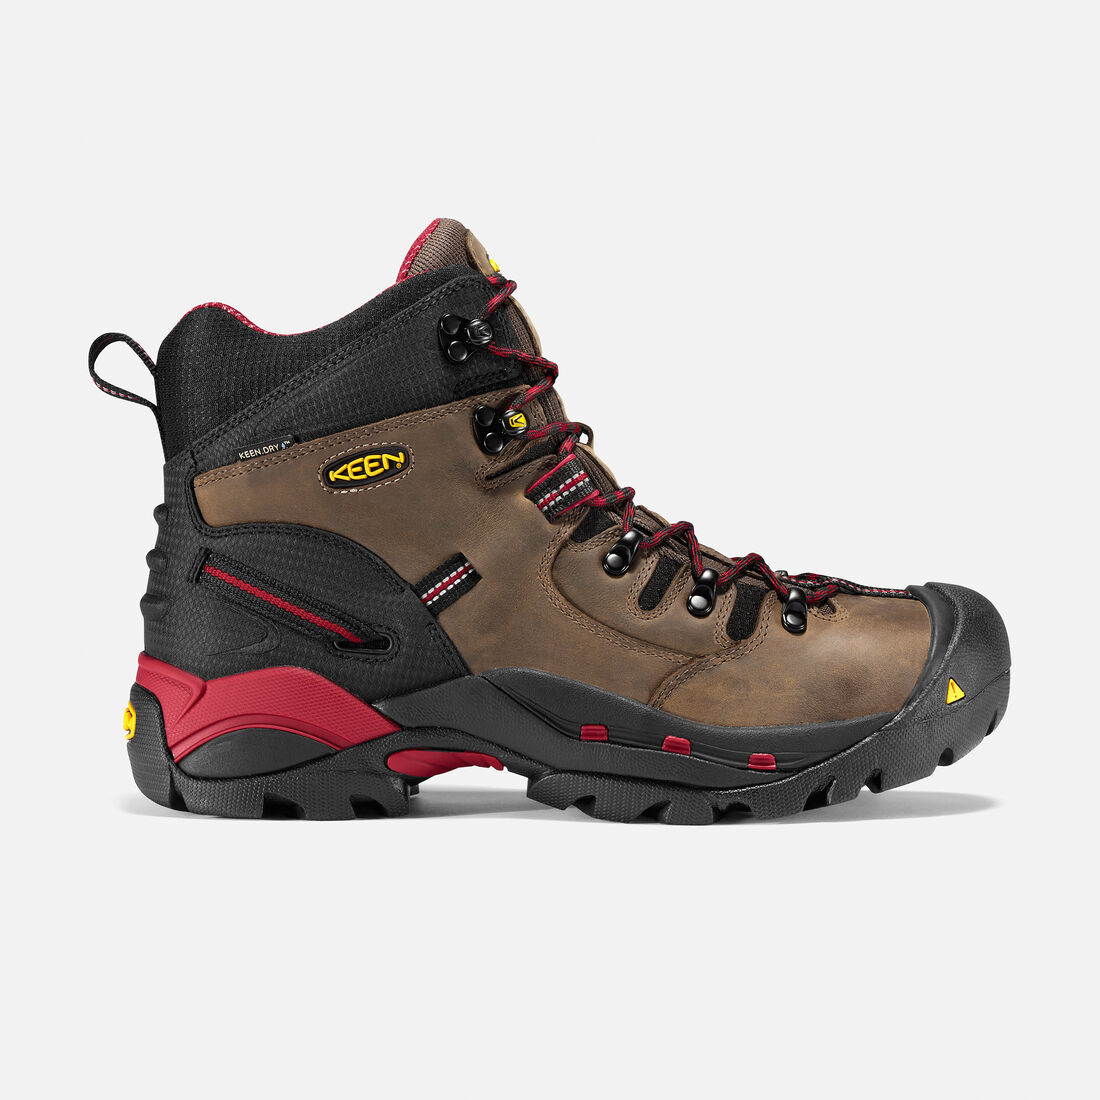 Men's Pittsburgh (Steel Toe) in Bison - large view.